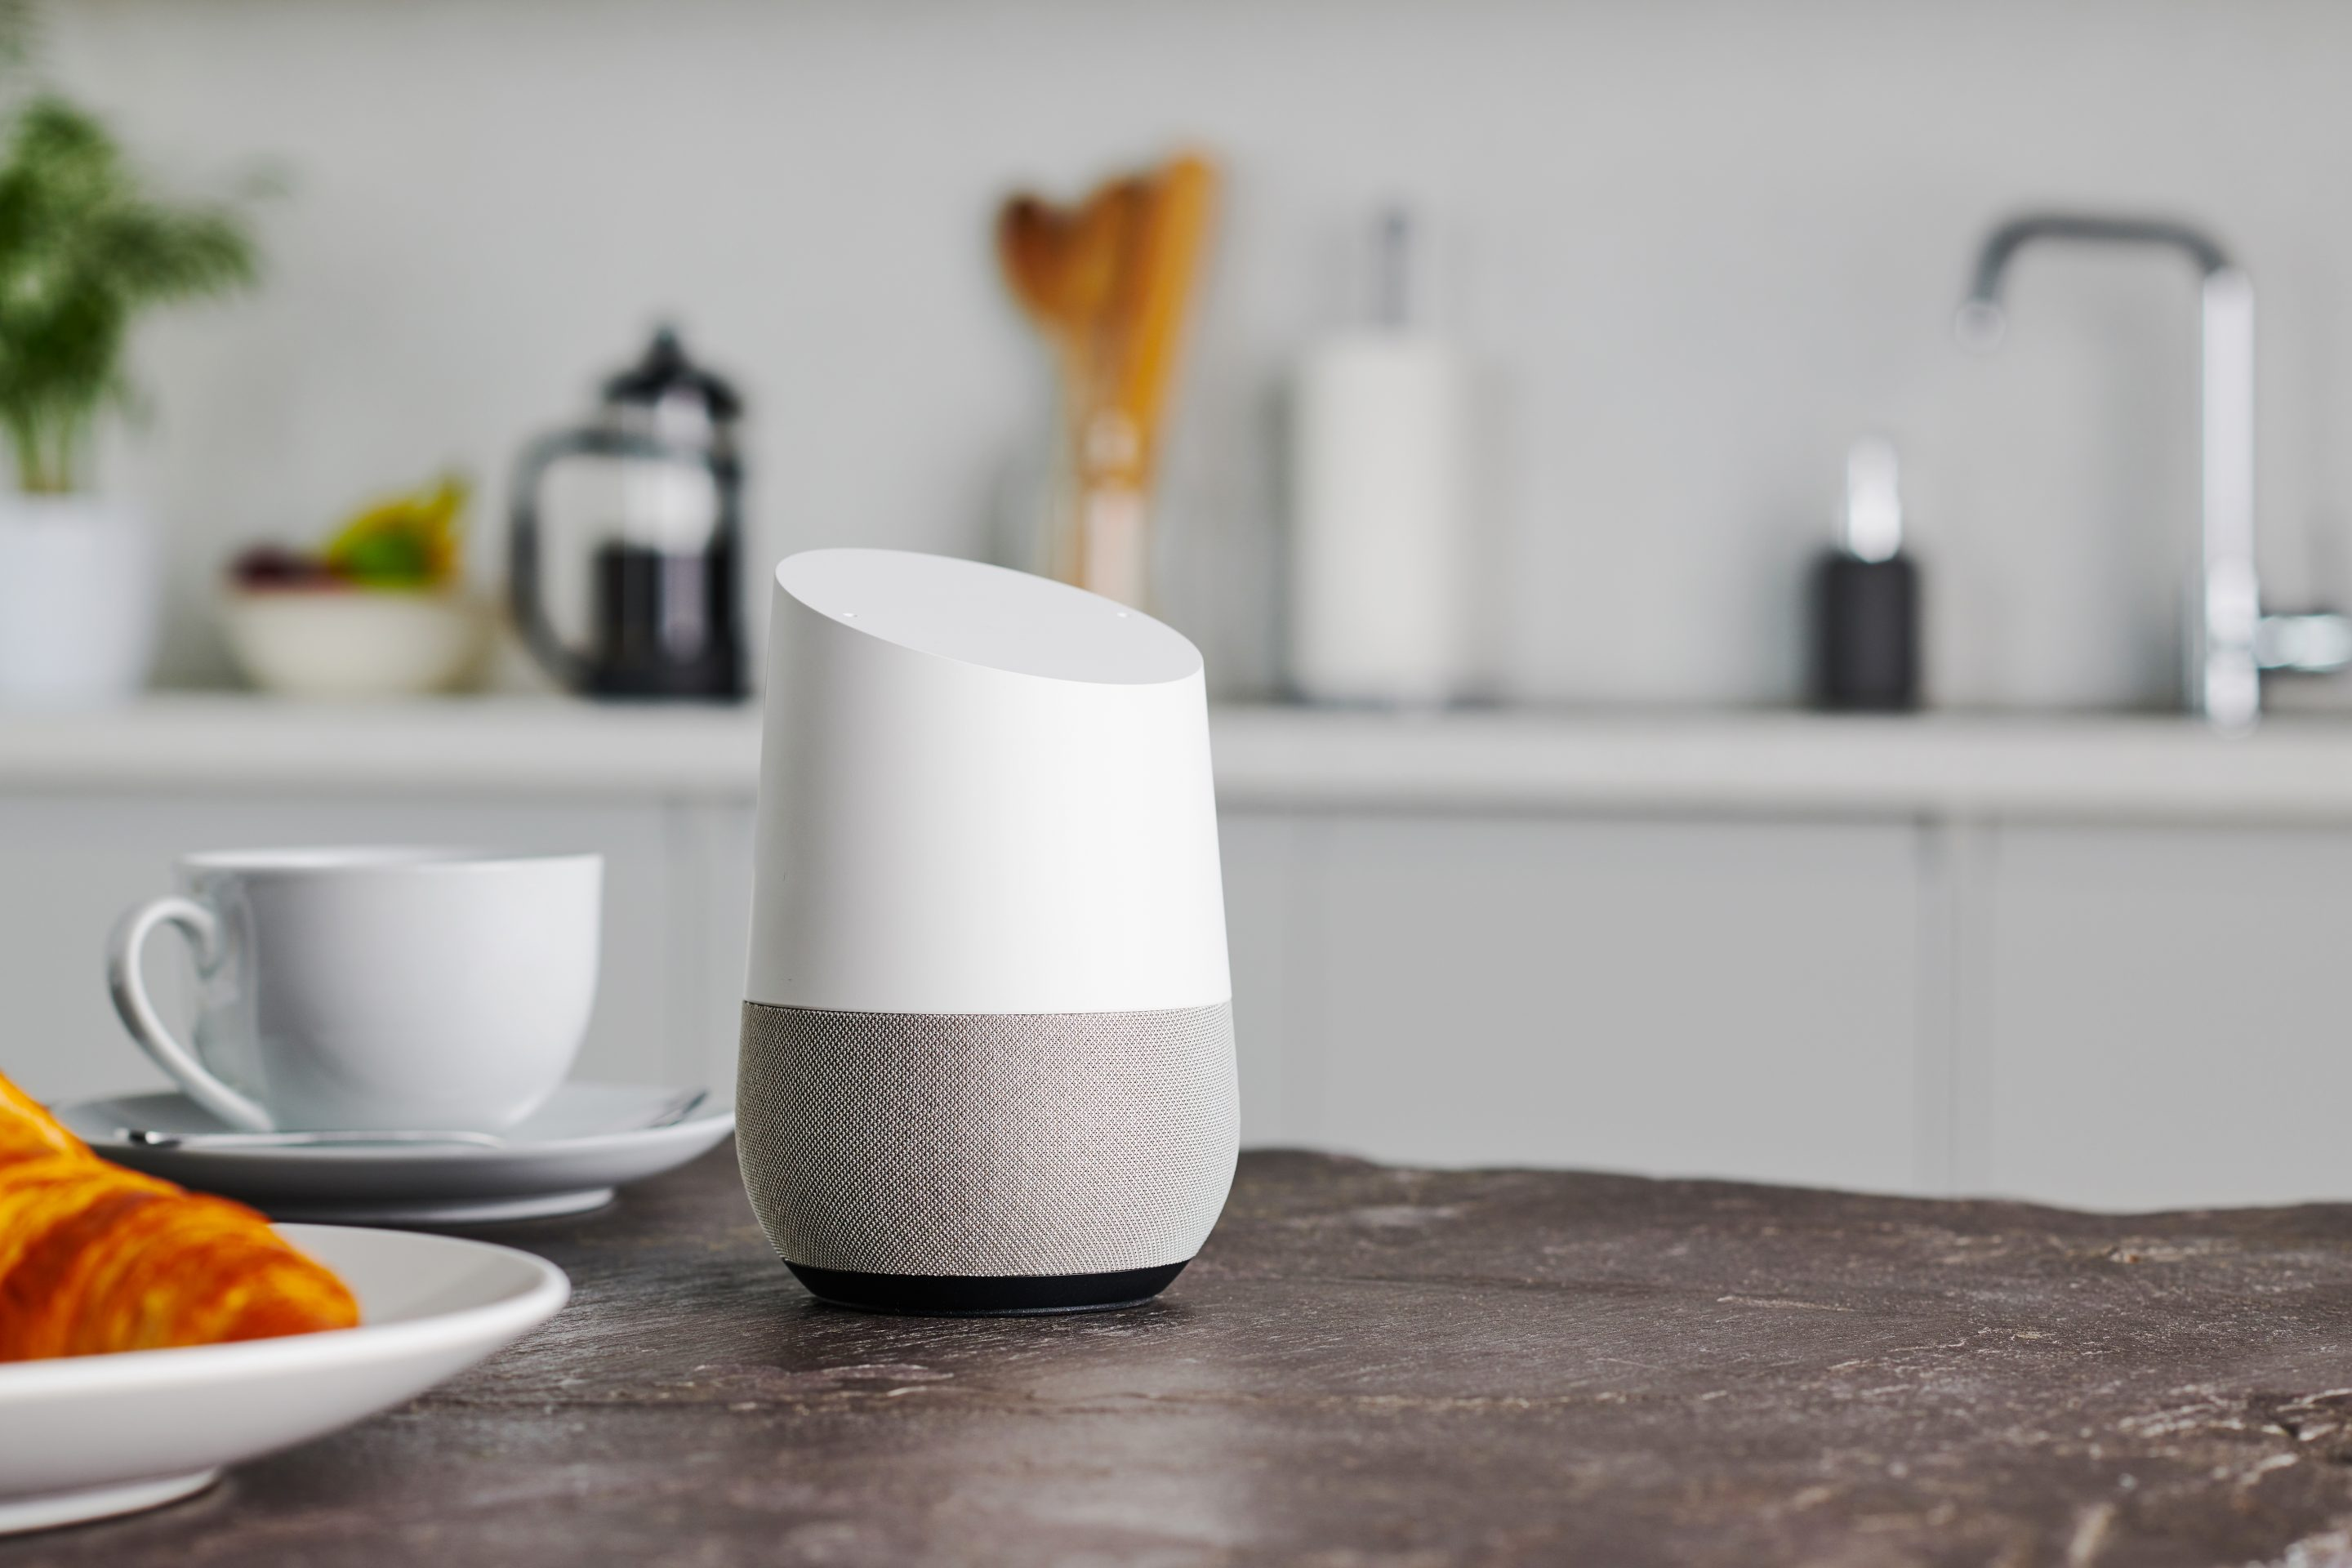 Google Home is collecting more data than users realize, and from Google Maps to Chrome, the company has a history of gathering too much data.